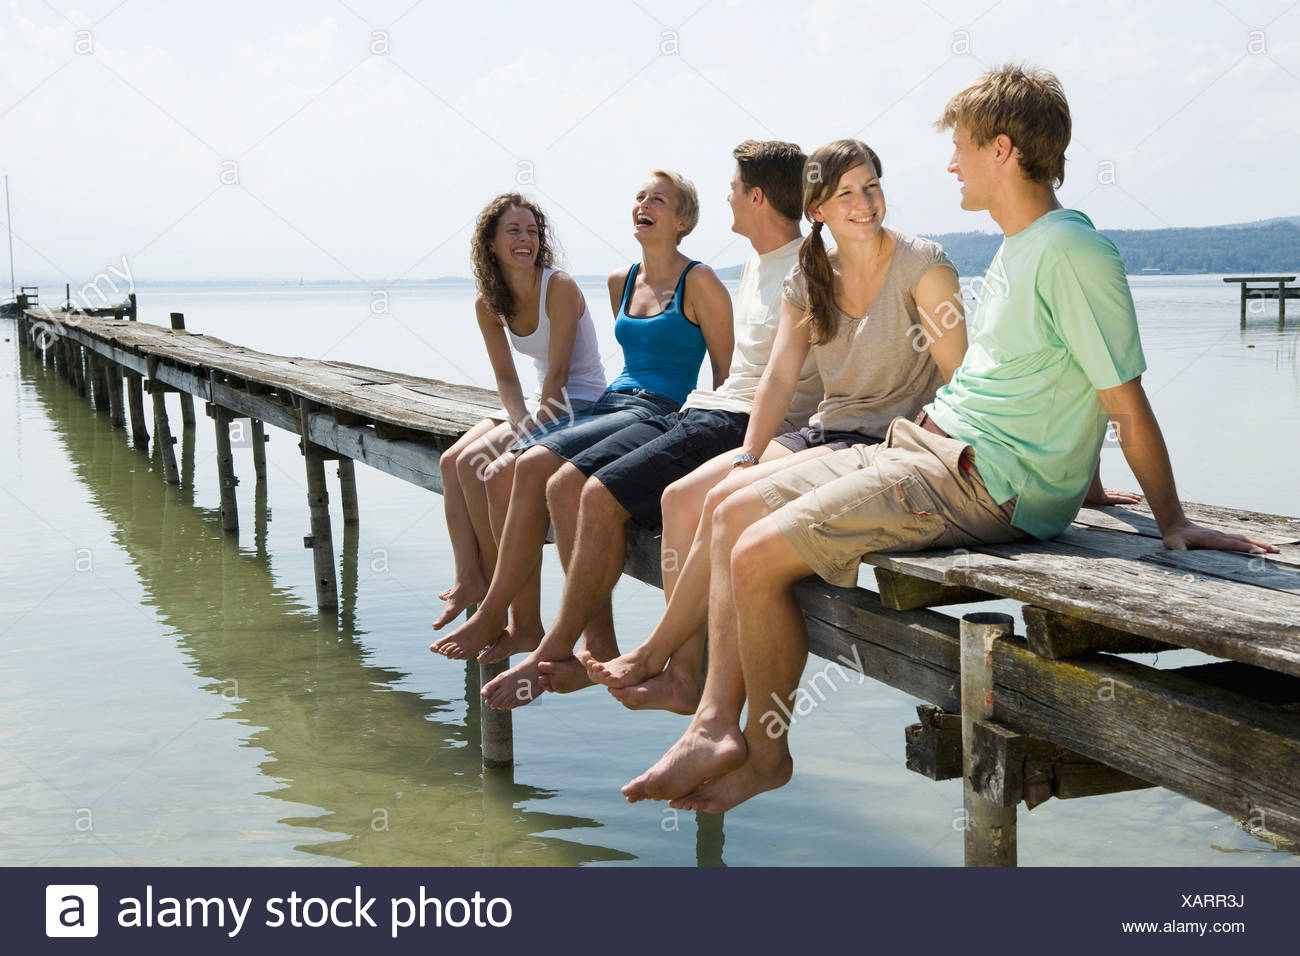 Germany, Bavaria, Ammersee, Young people relaxing on jetty - Stock Image